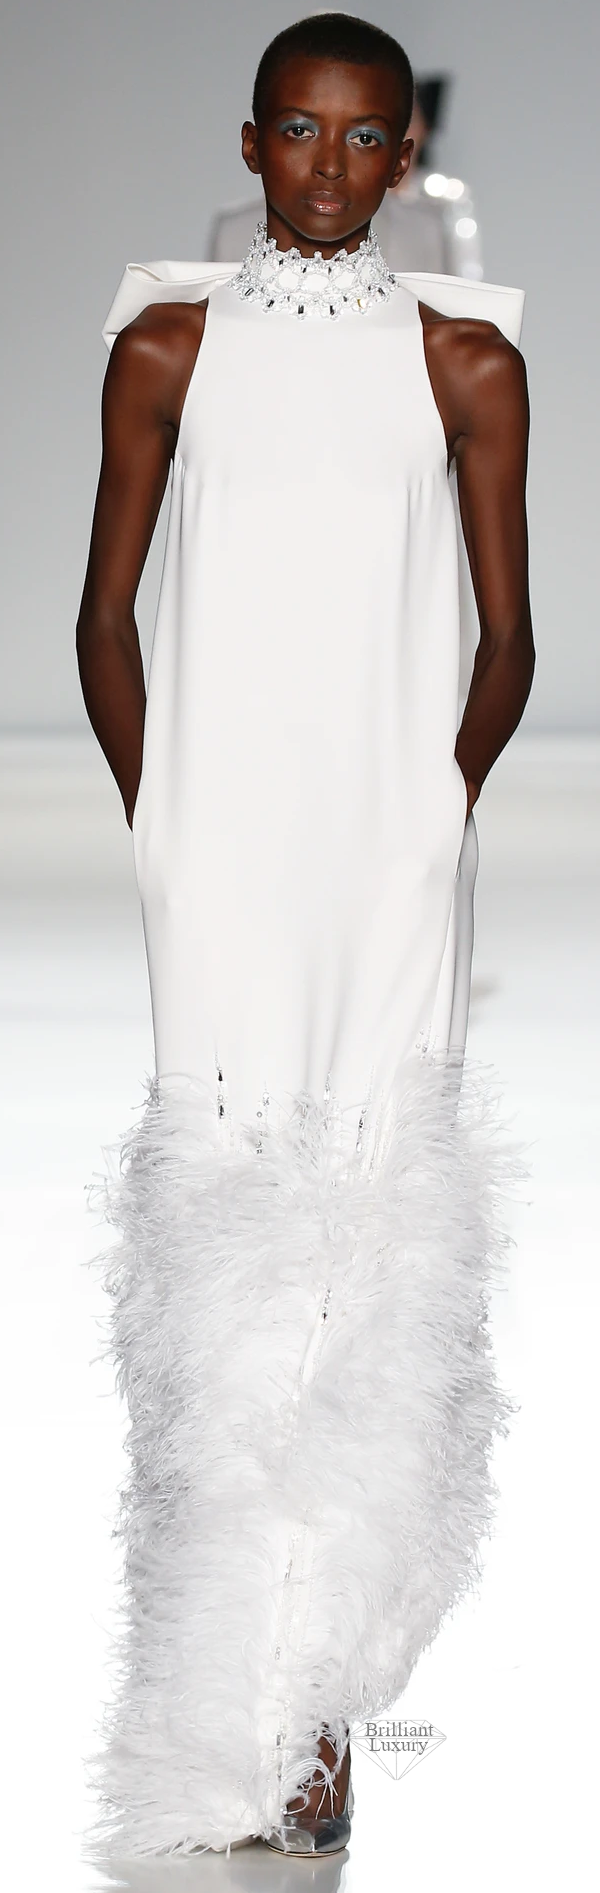 white silk crêpe halterneck column gown embellished with xilions crystals pearlescent sequins and ostrich feathers and finished with an oversized bow #brilliantluxury